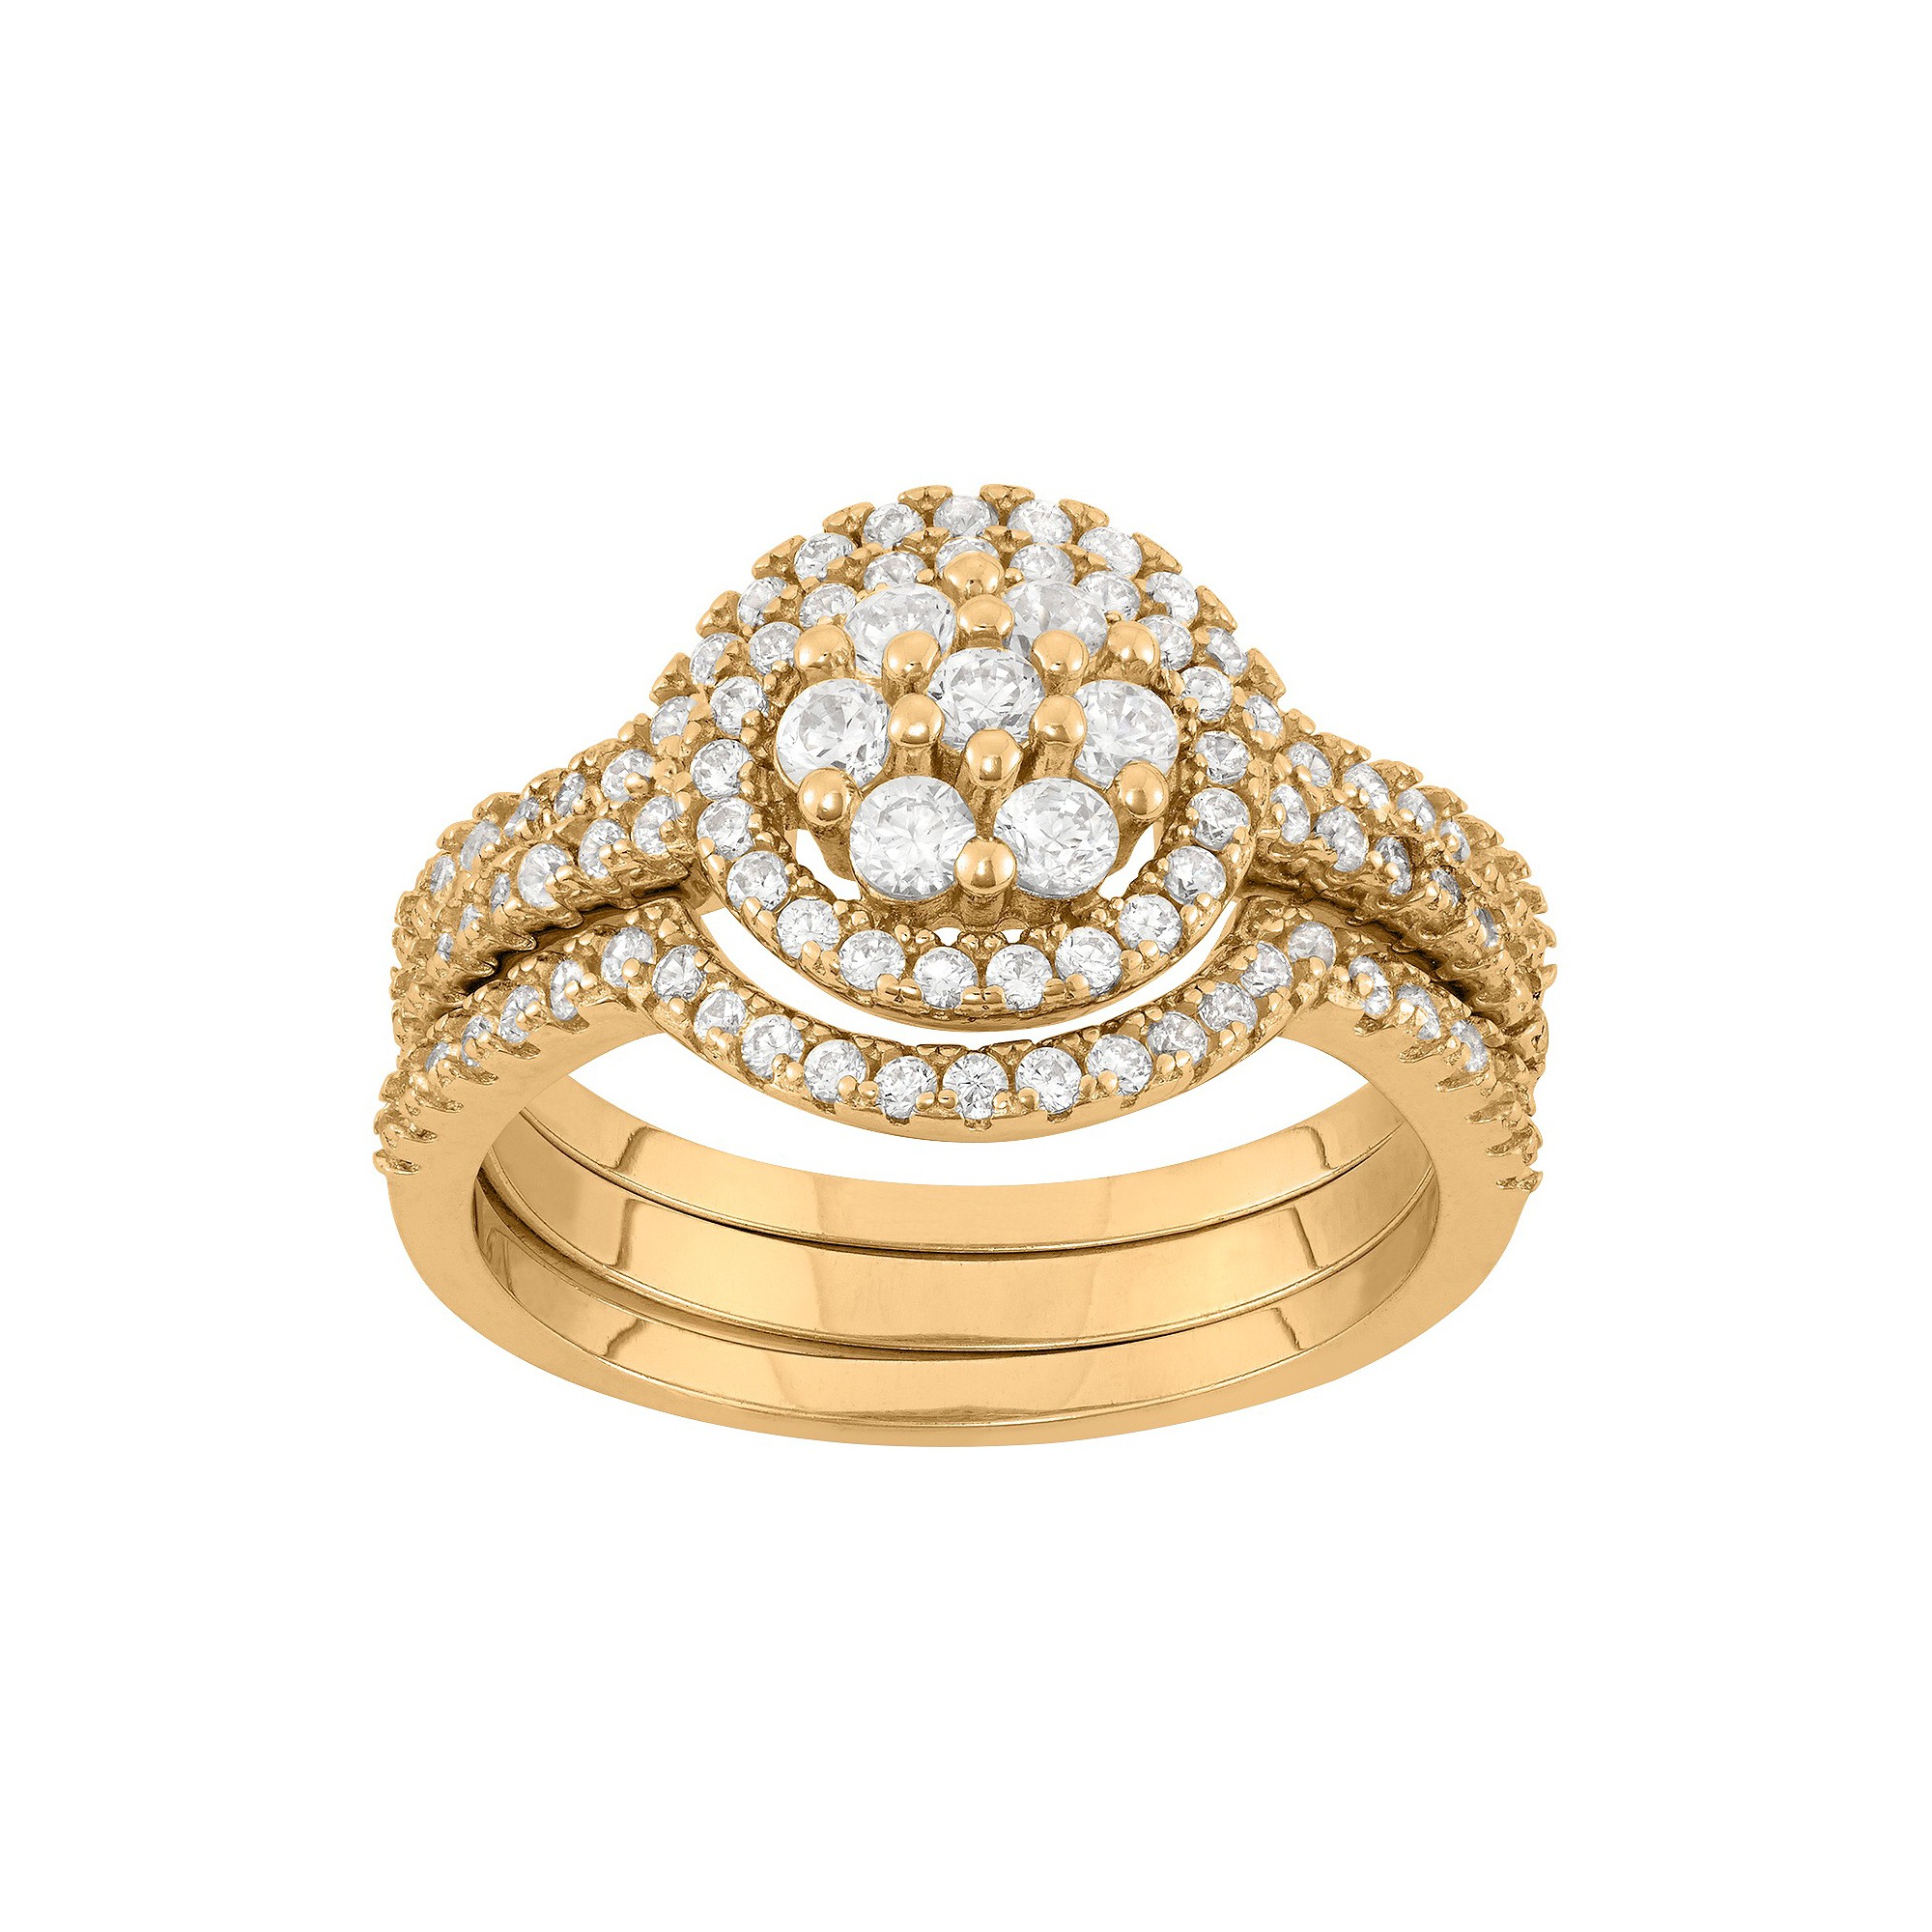 0.9 CT. T.W. 3-Piece Multi Round Cubic Zirconia Ring Set In 14K Gold Over Silver - (7), Women's, Yellow